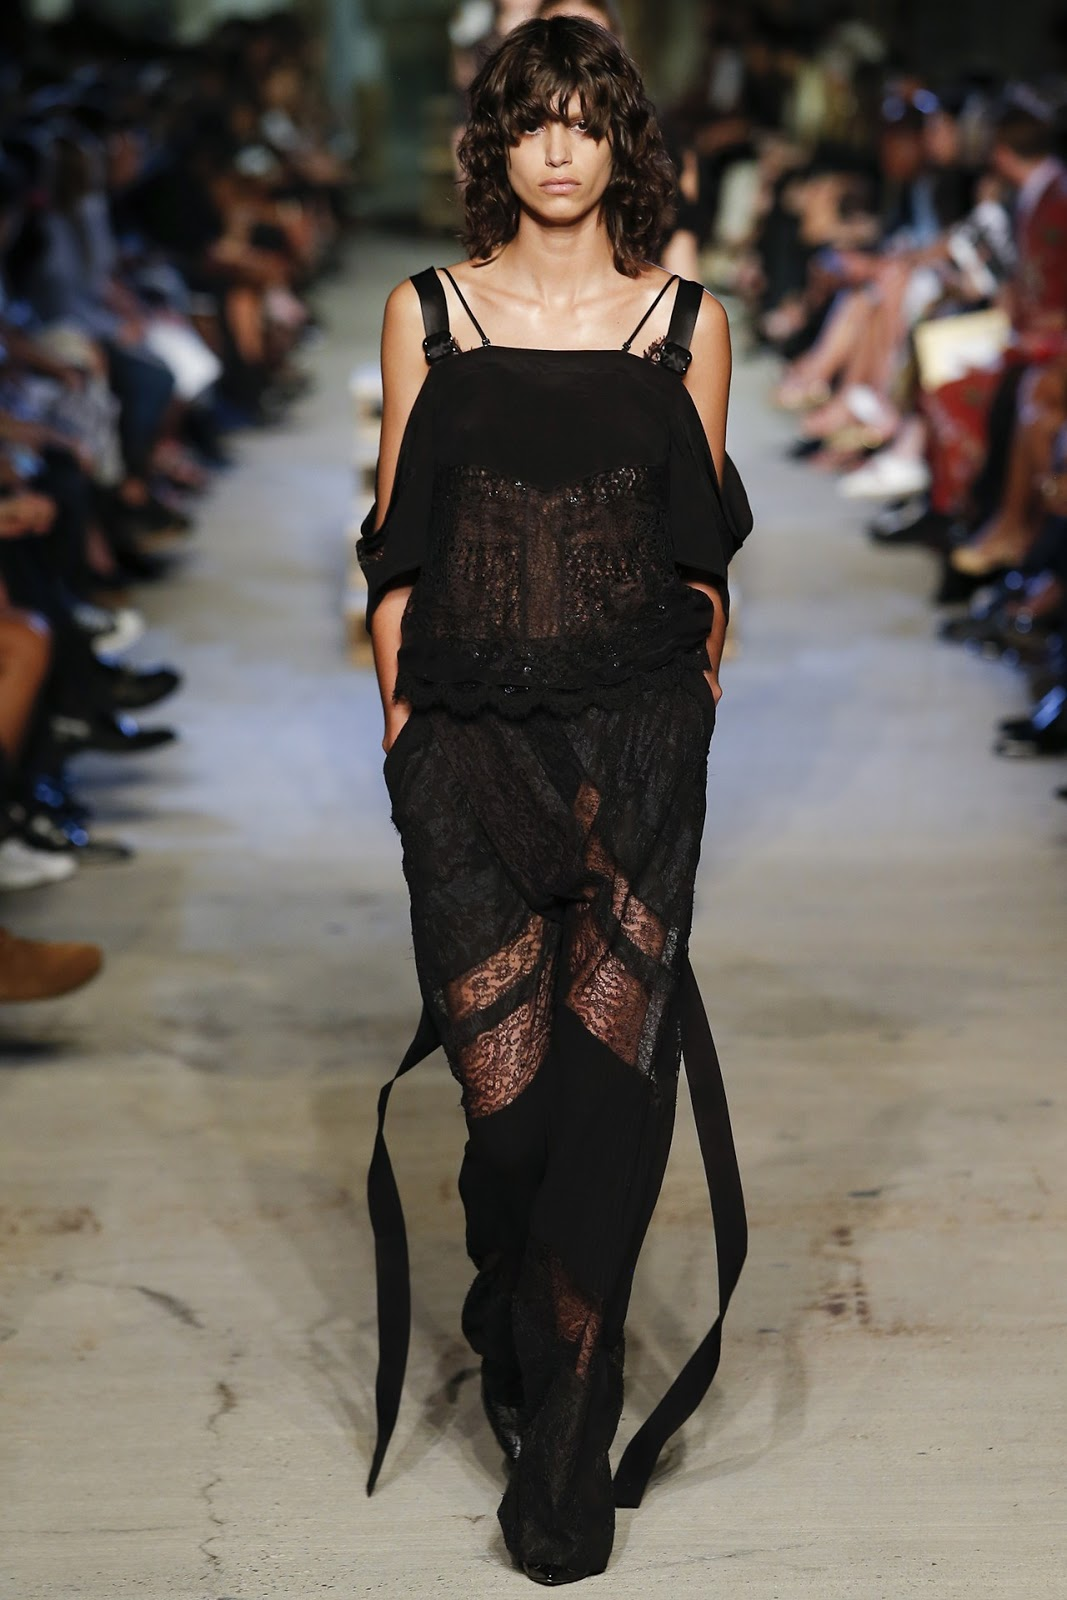 All you need to know about Givenchy Spring/Sumemr 2016 show, the highlights, the video, the collection. All via fashionedbylove.co.uk, british fashion blog